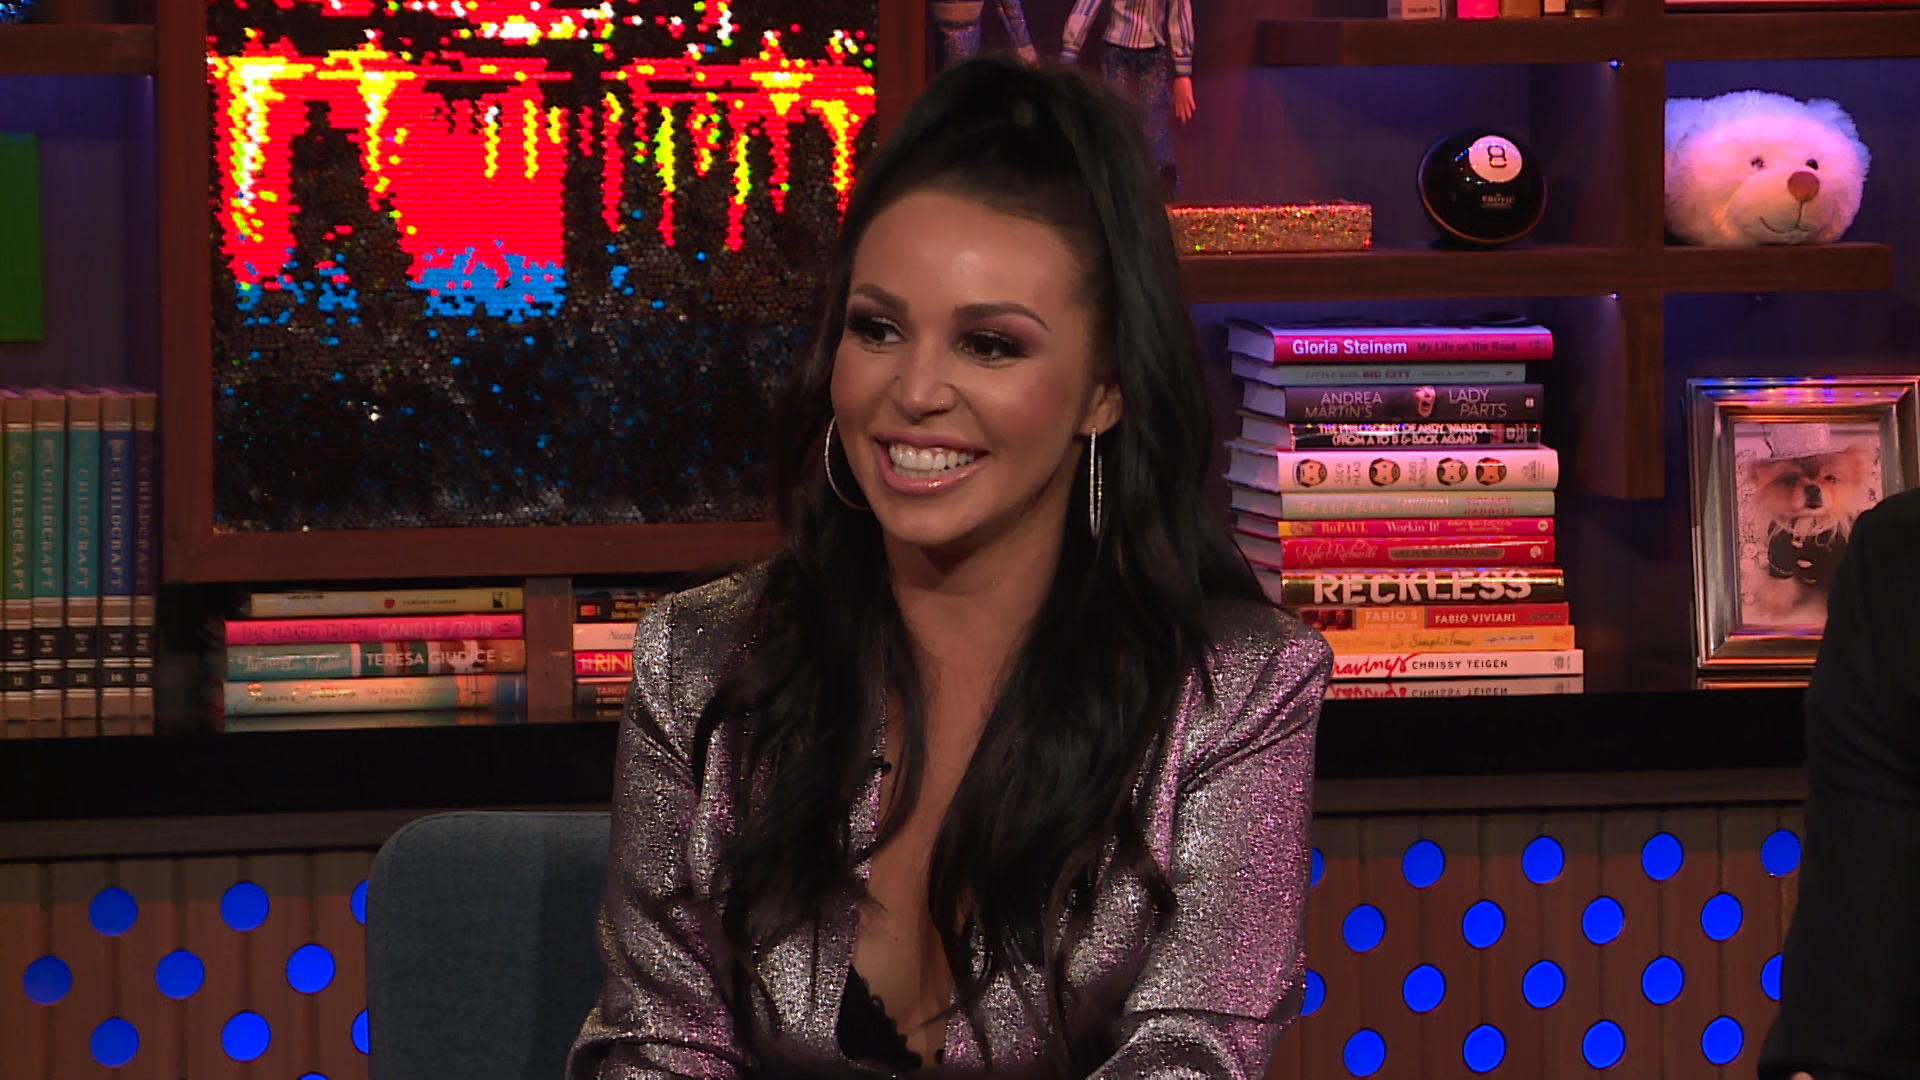 Scheana Shay on the NFL Player Rumors